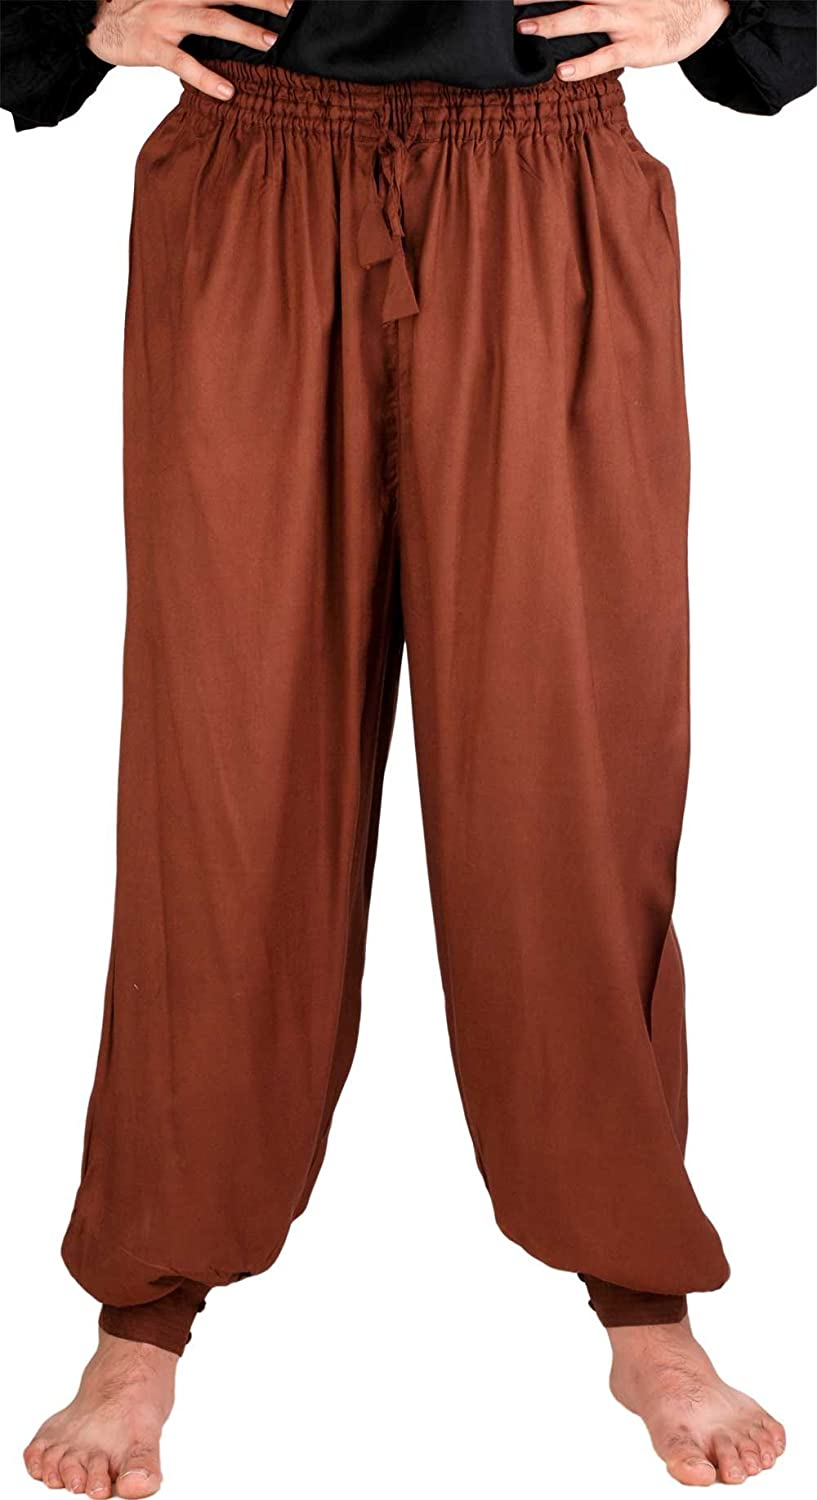 Medieval Pirate Poet's Chocolate Harem Pants